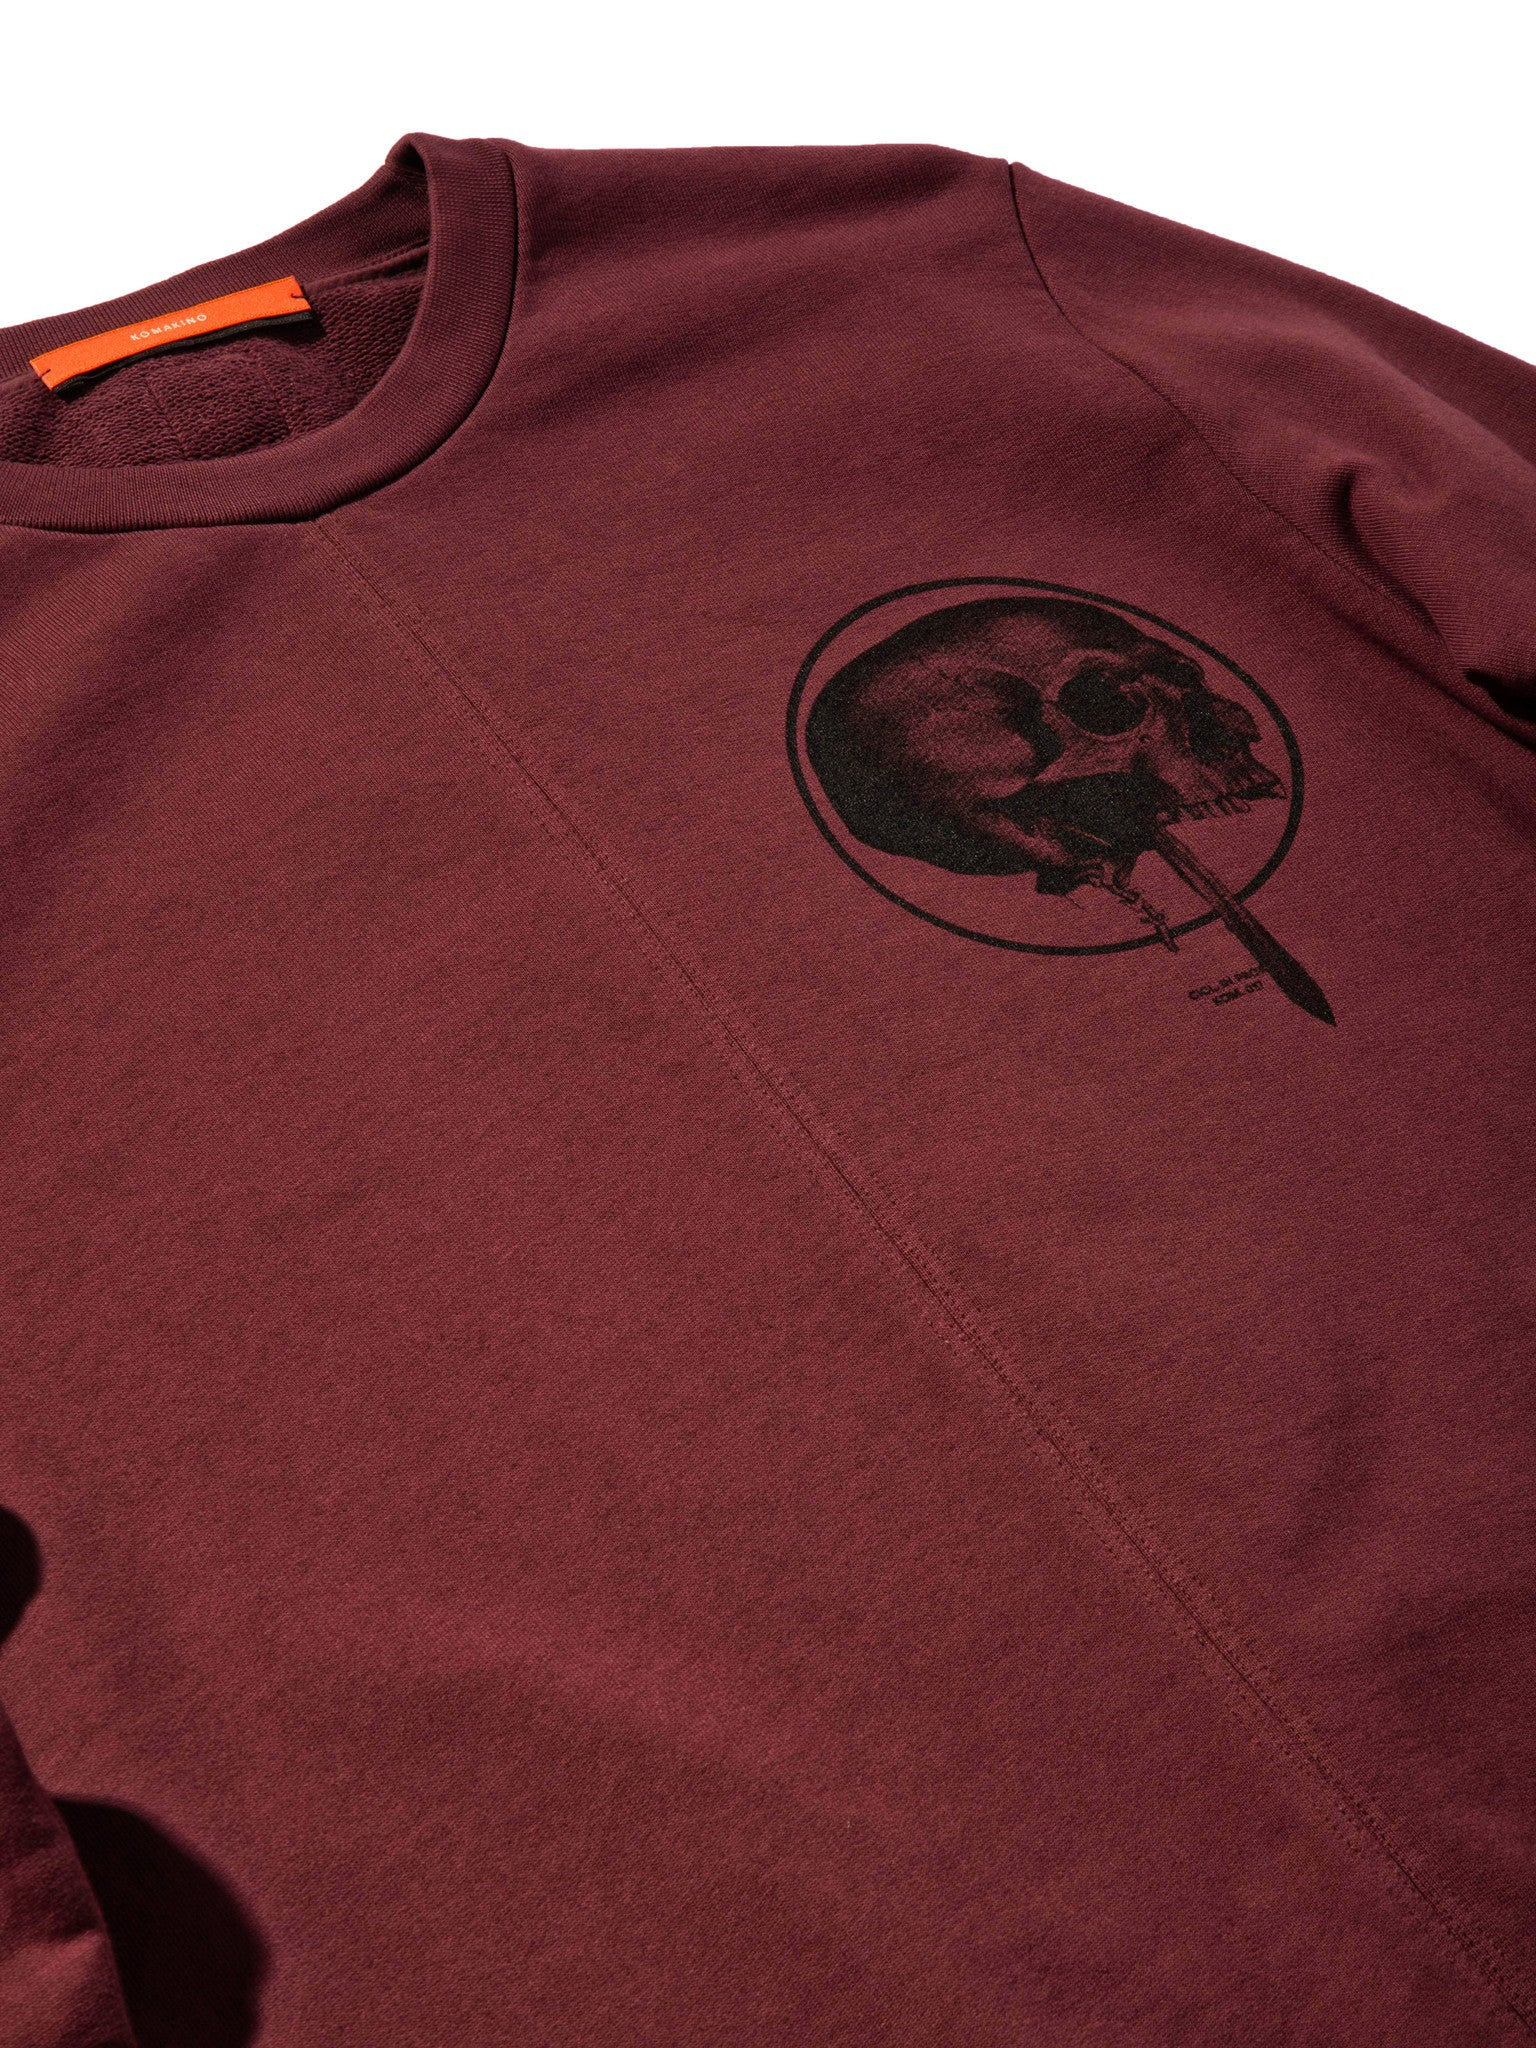 Burgundy Heavy Jersey Sweater Boxy Fit (Detachable Strap) 6